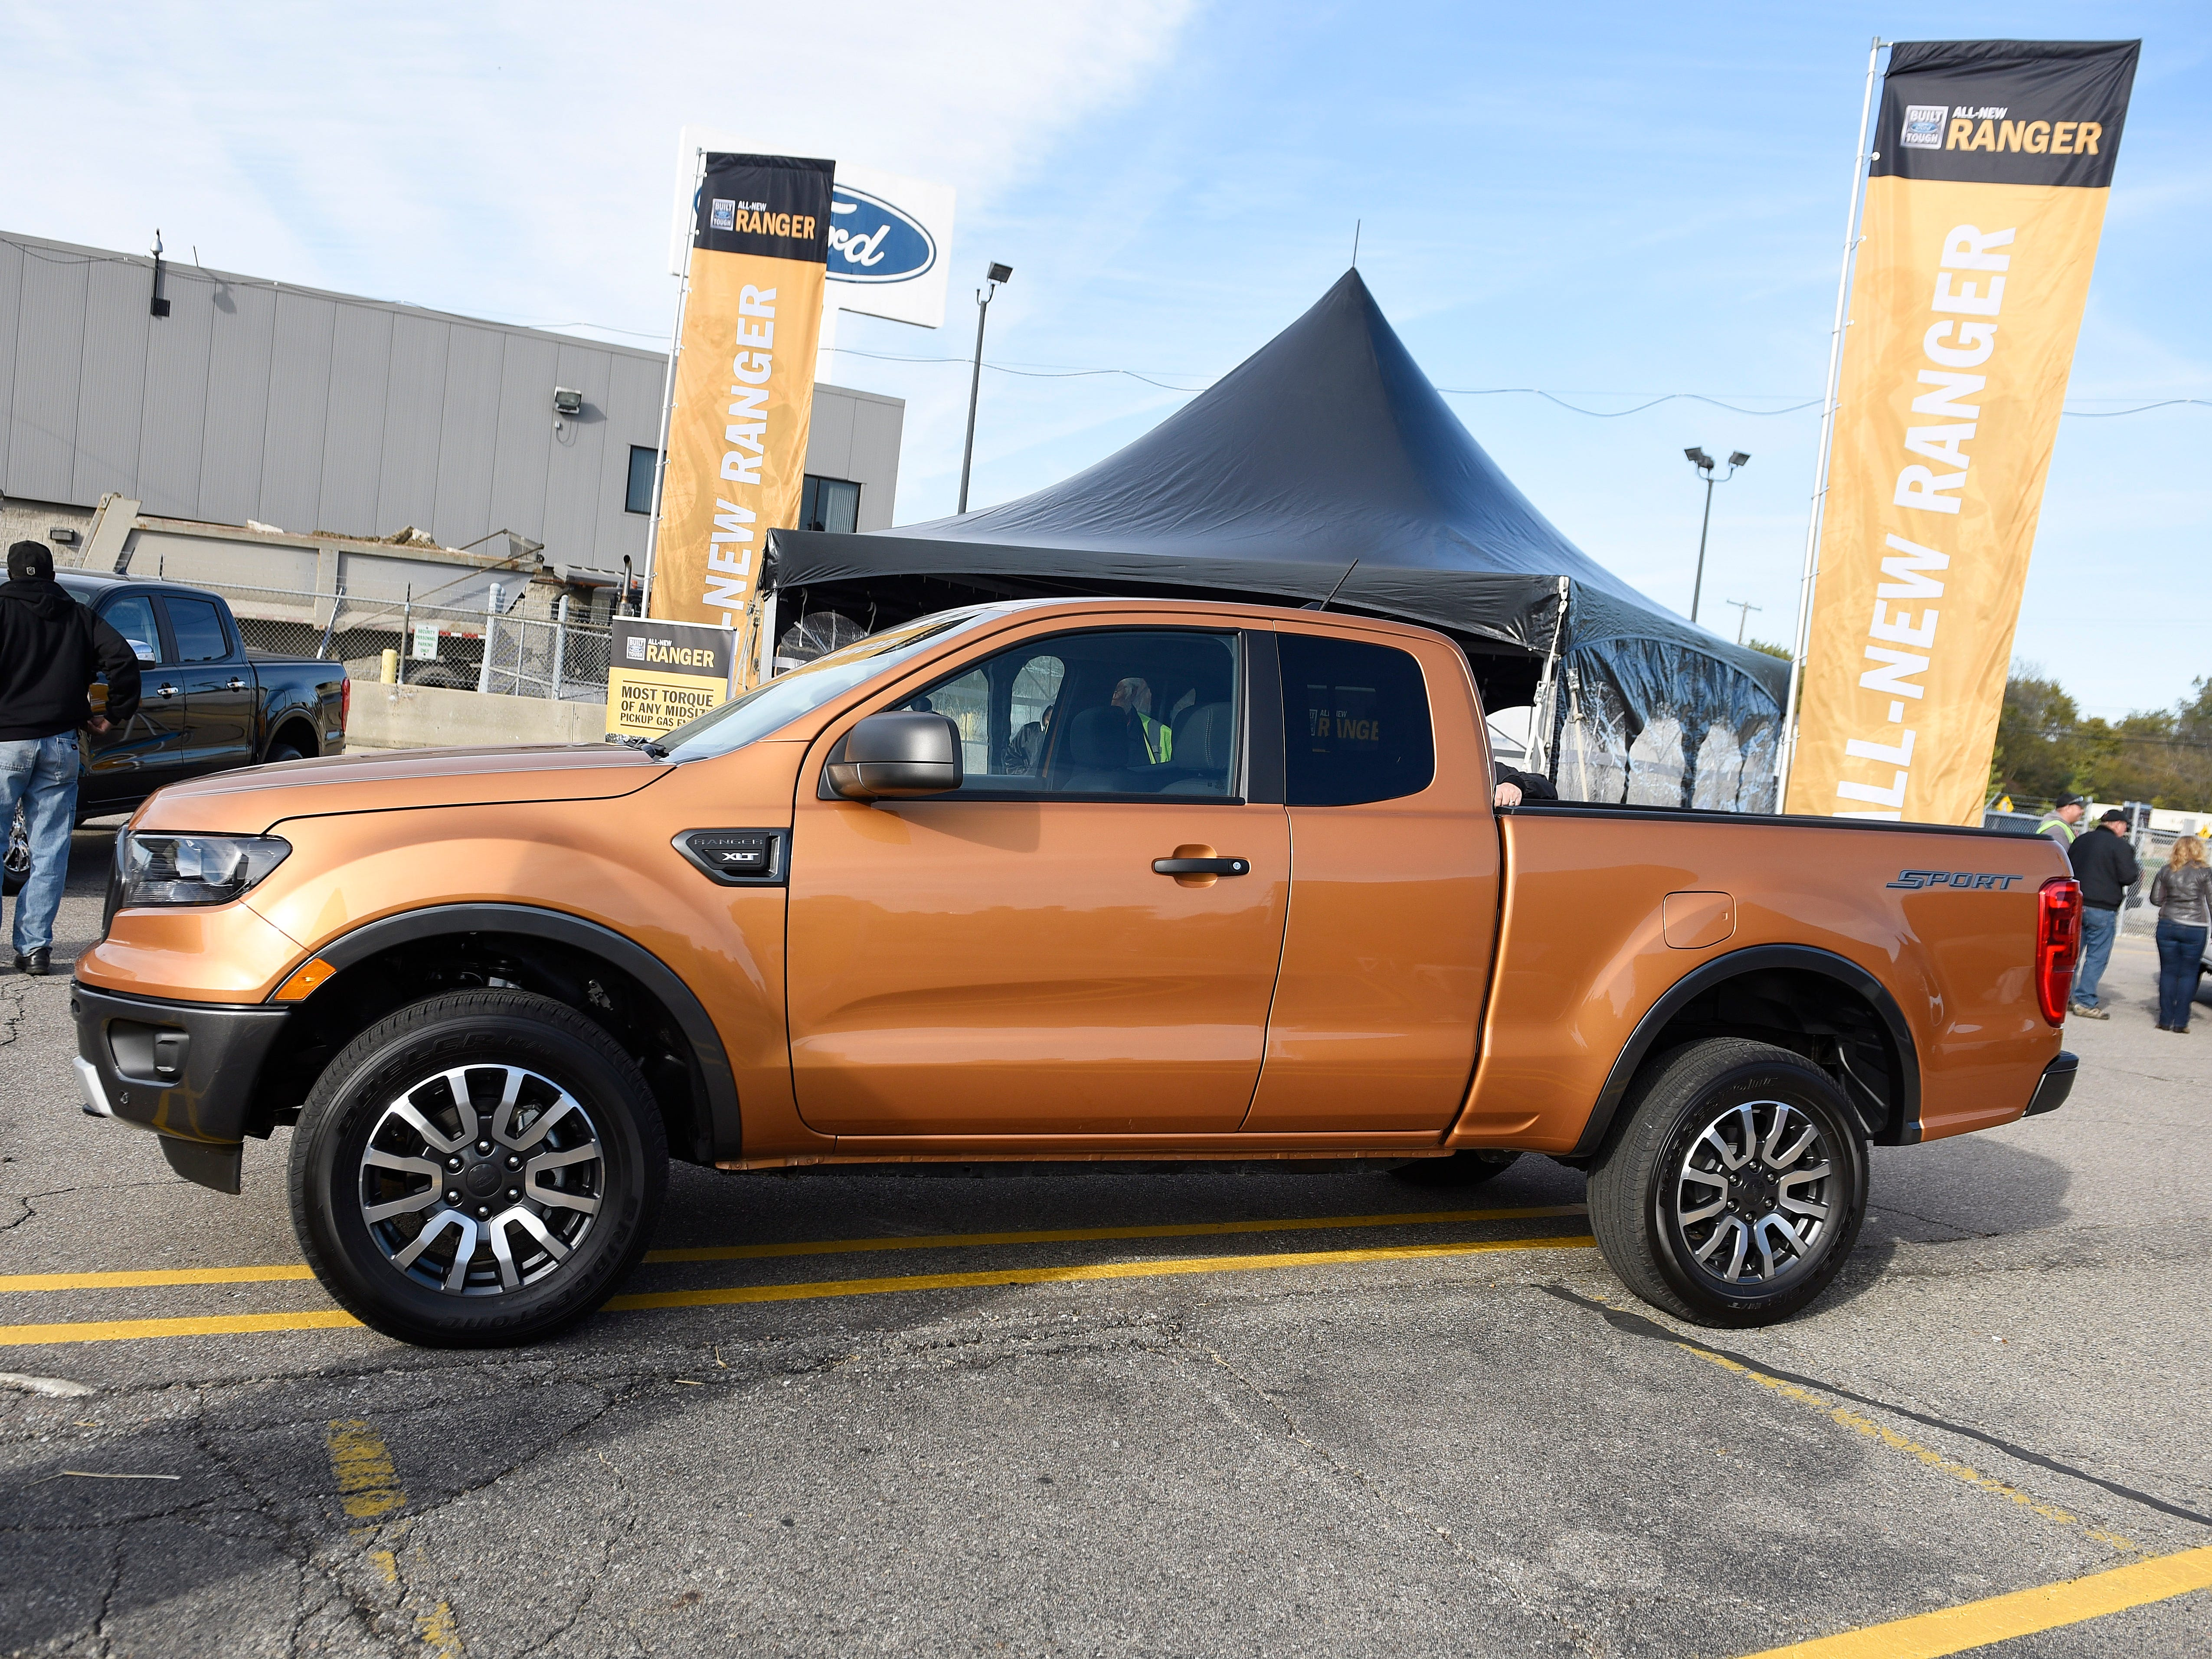 """""""This Ranger has been launched around the world and it's doing really well,"""" said Joe Hinrichs, Ford president of global markets.  """"We know there's a lot of interest."""""""